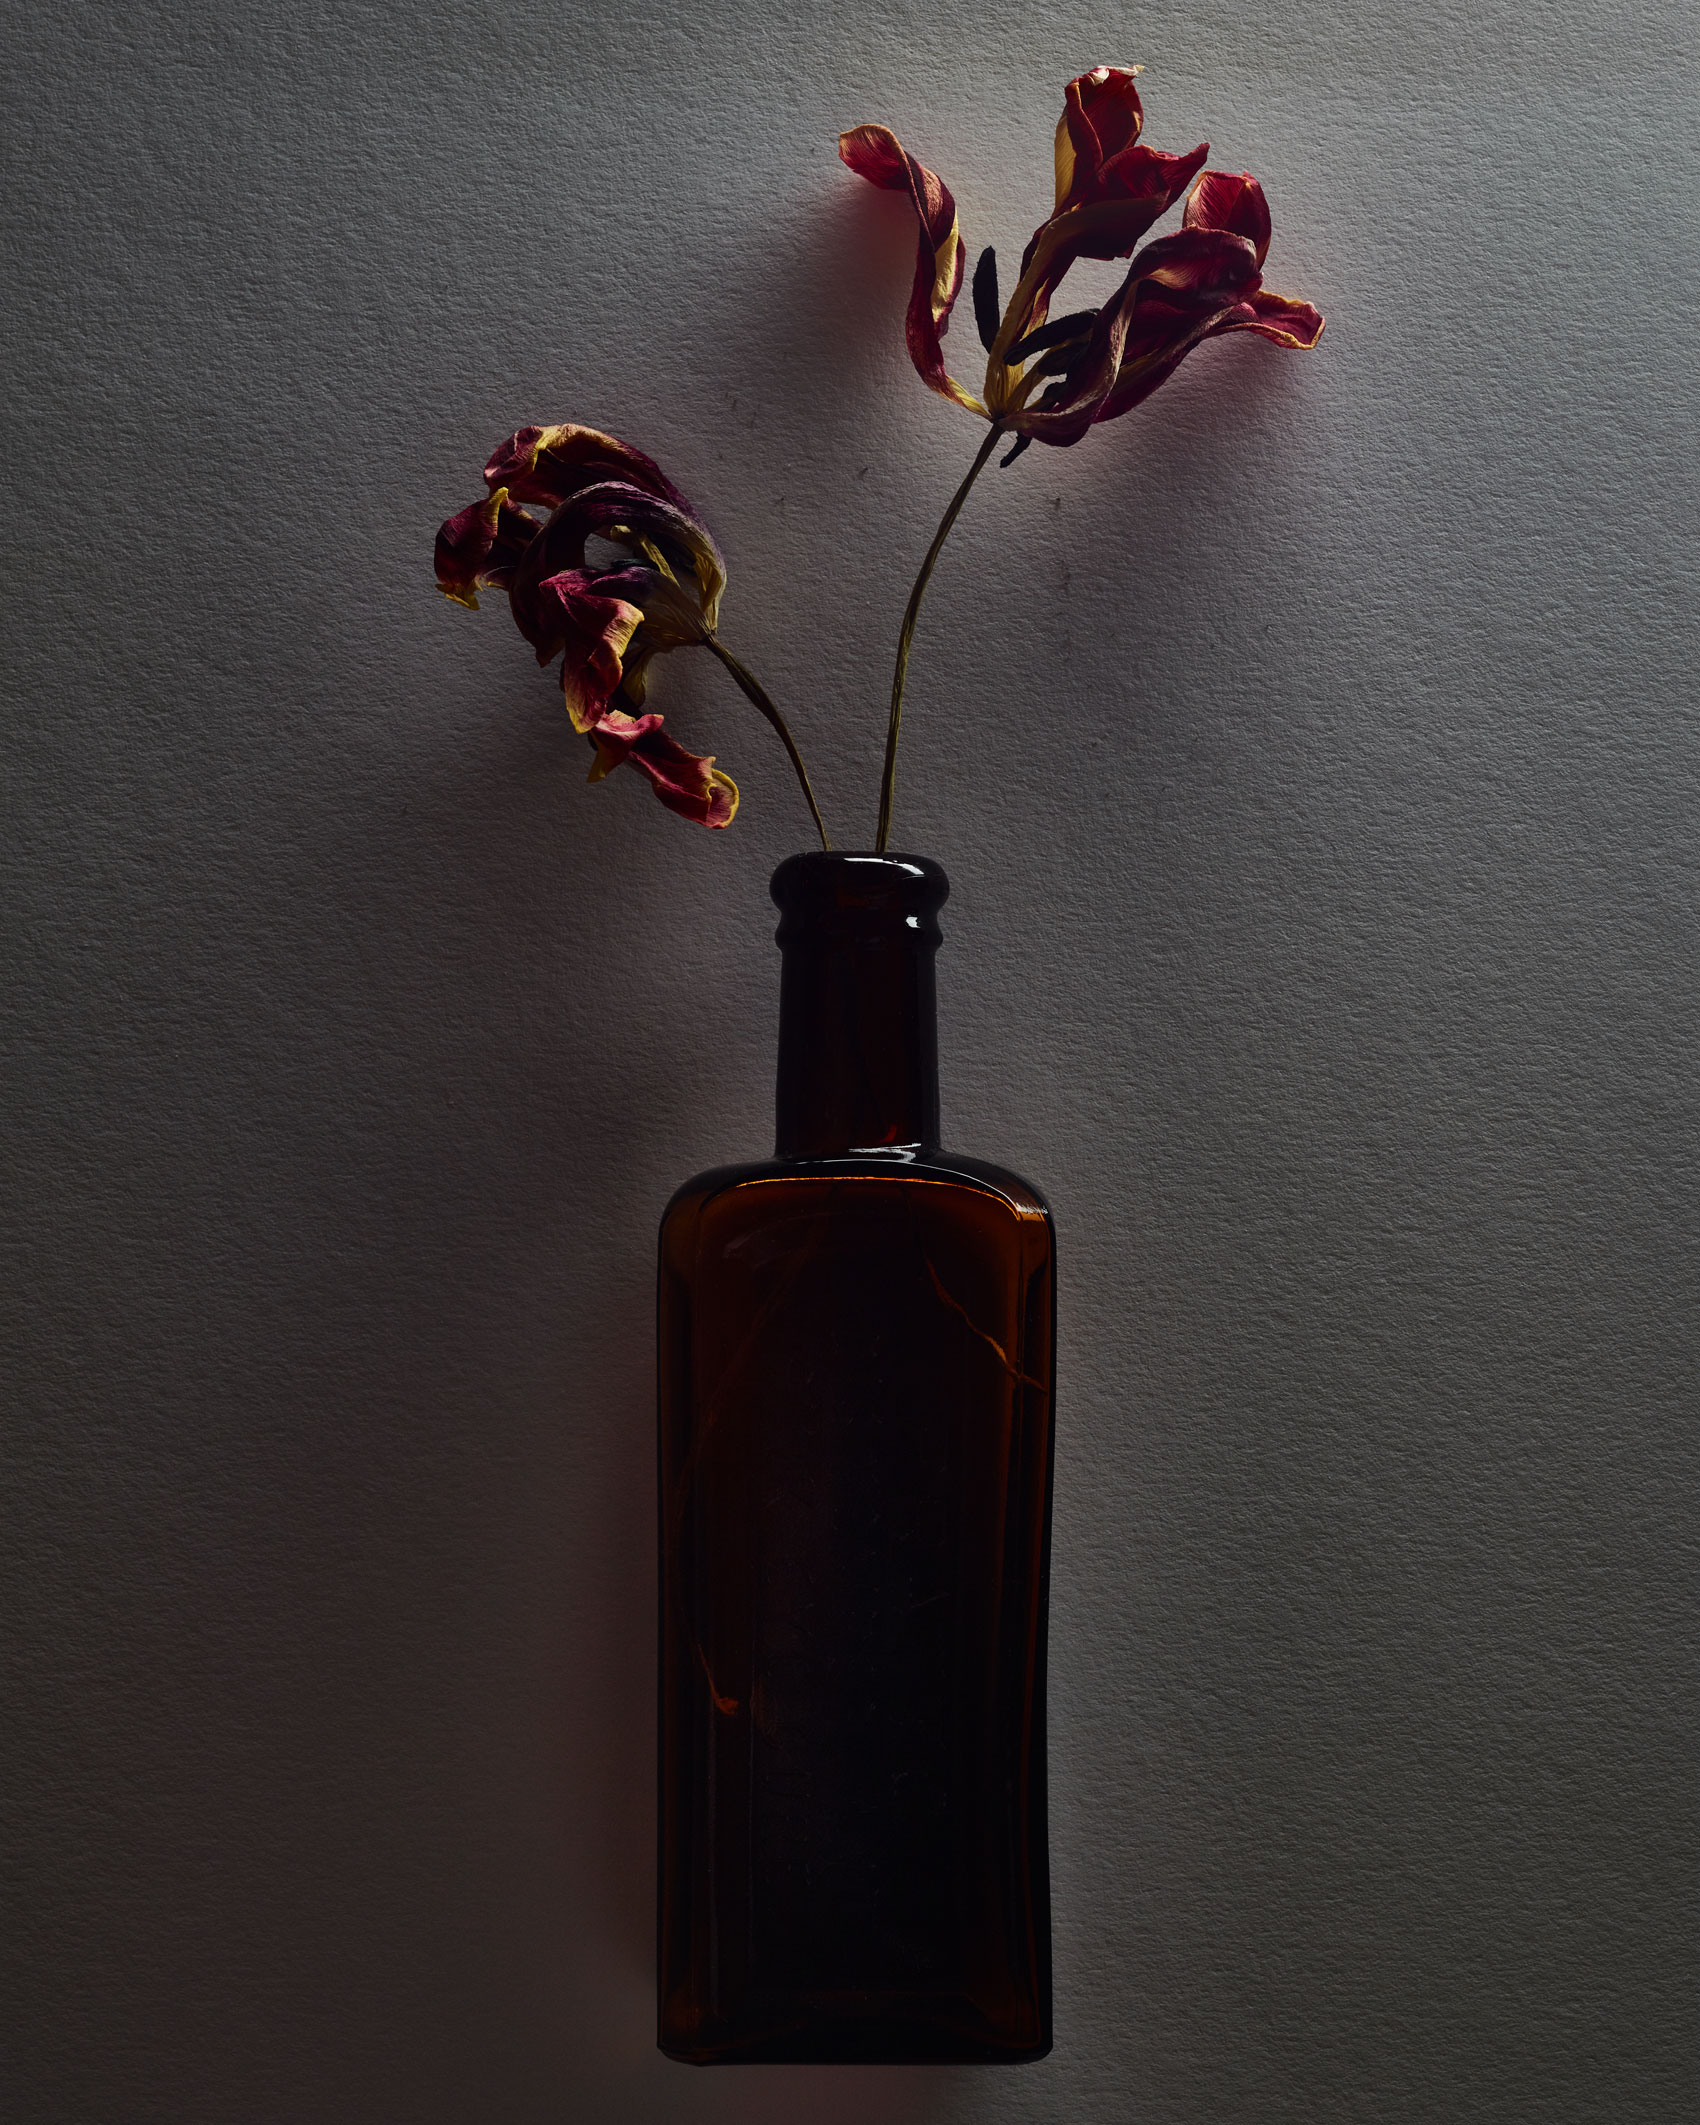 Dried Flowers in a Brown Bottle